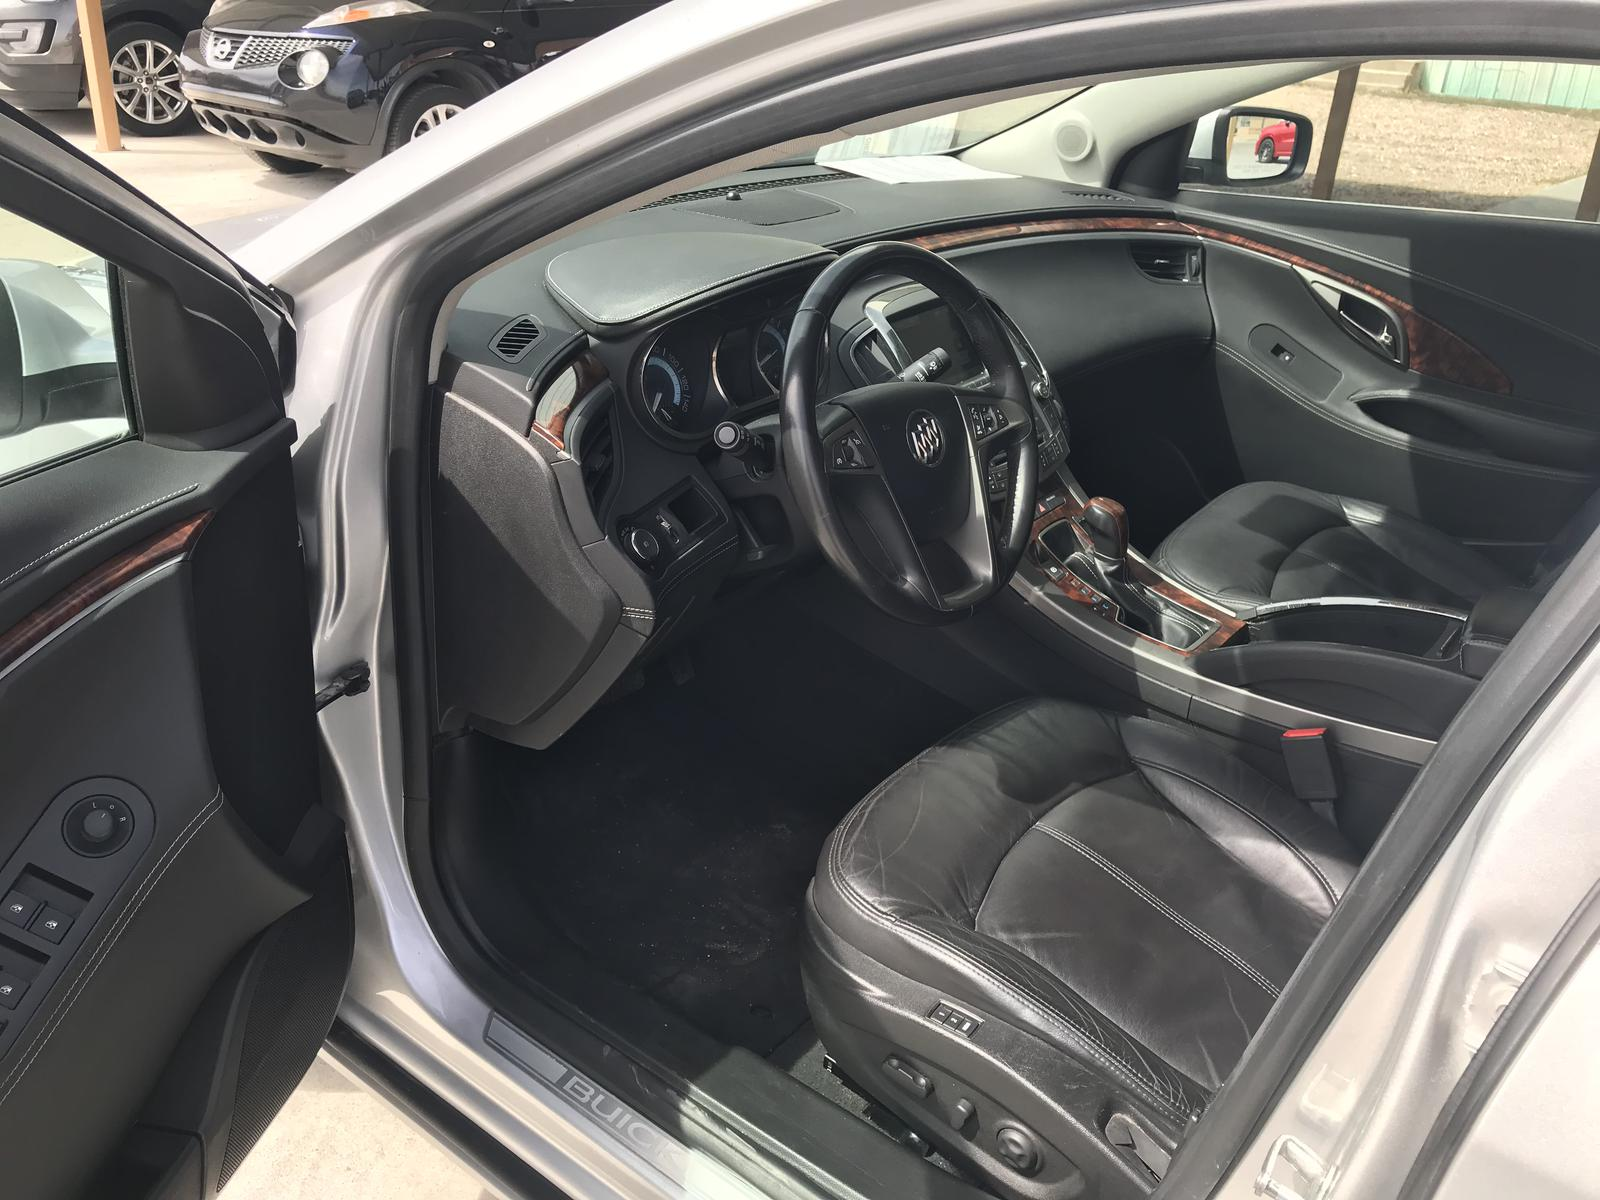 buick technology photo lacrosse luxury norris safety stage interior dick added